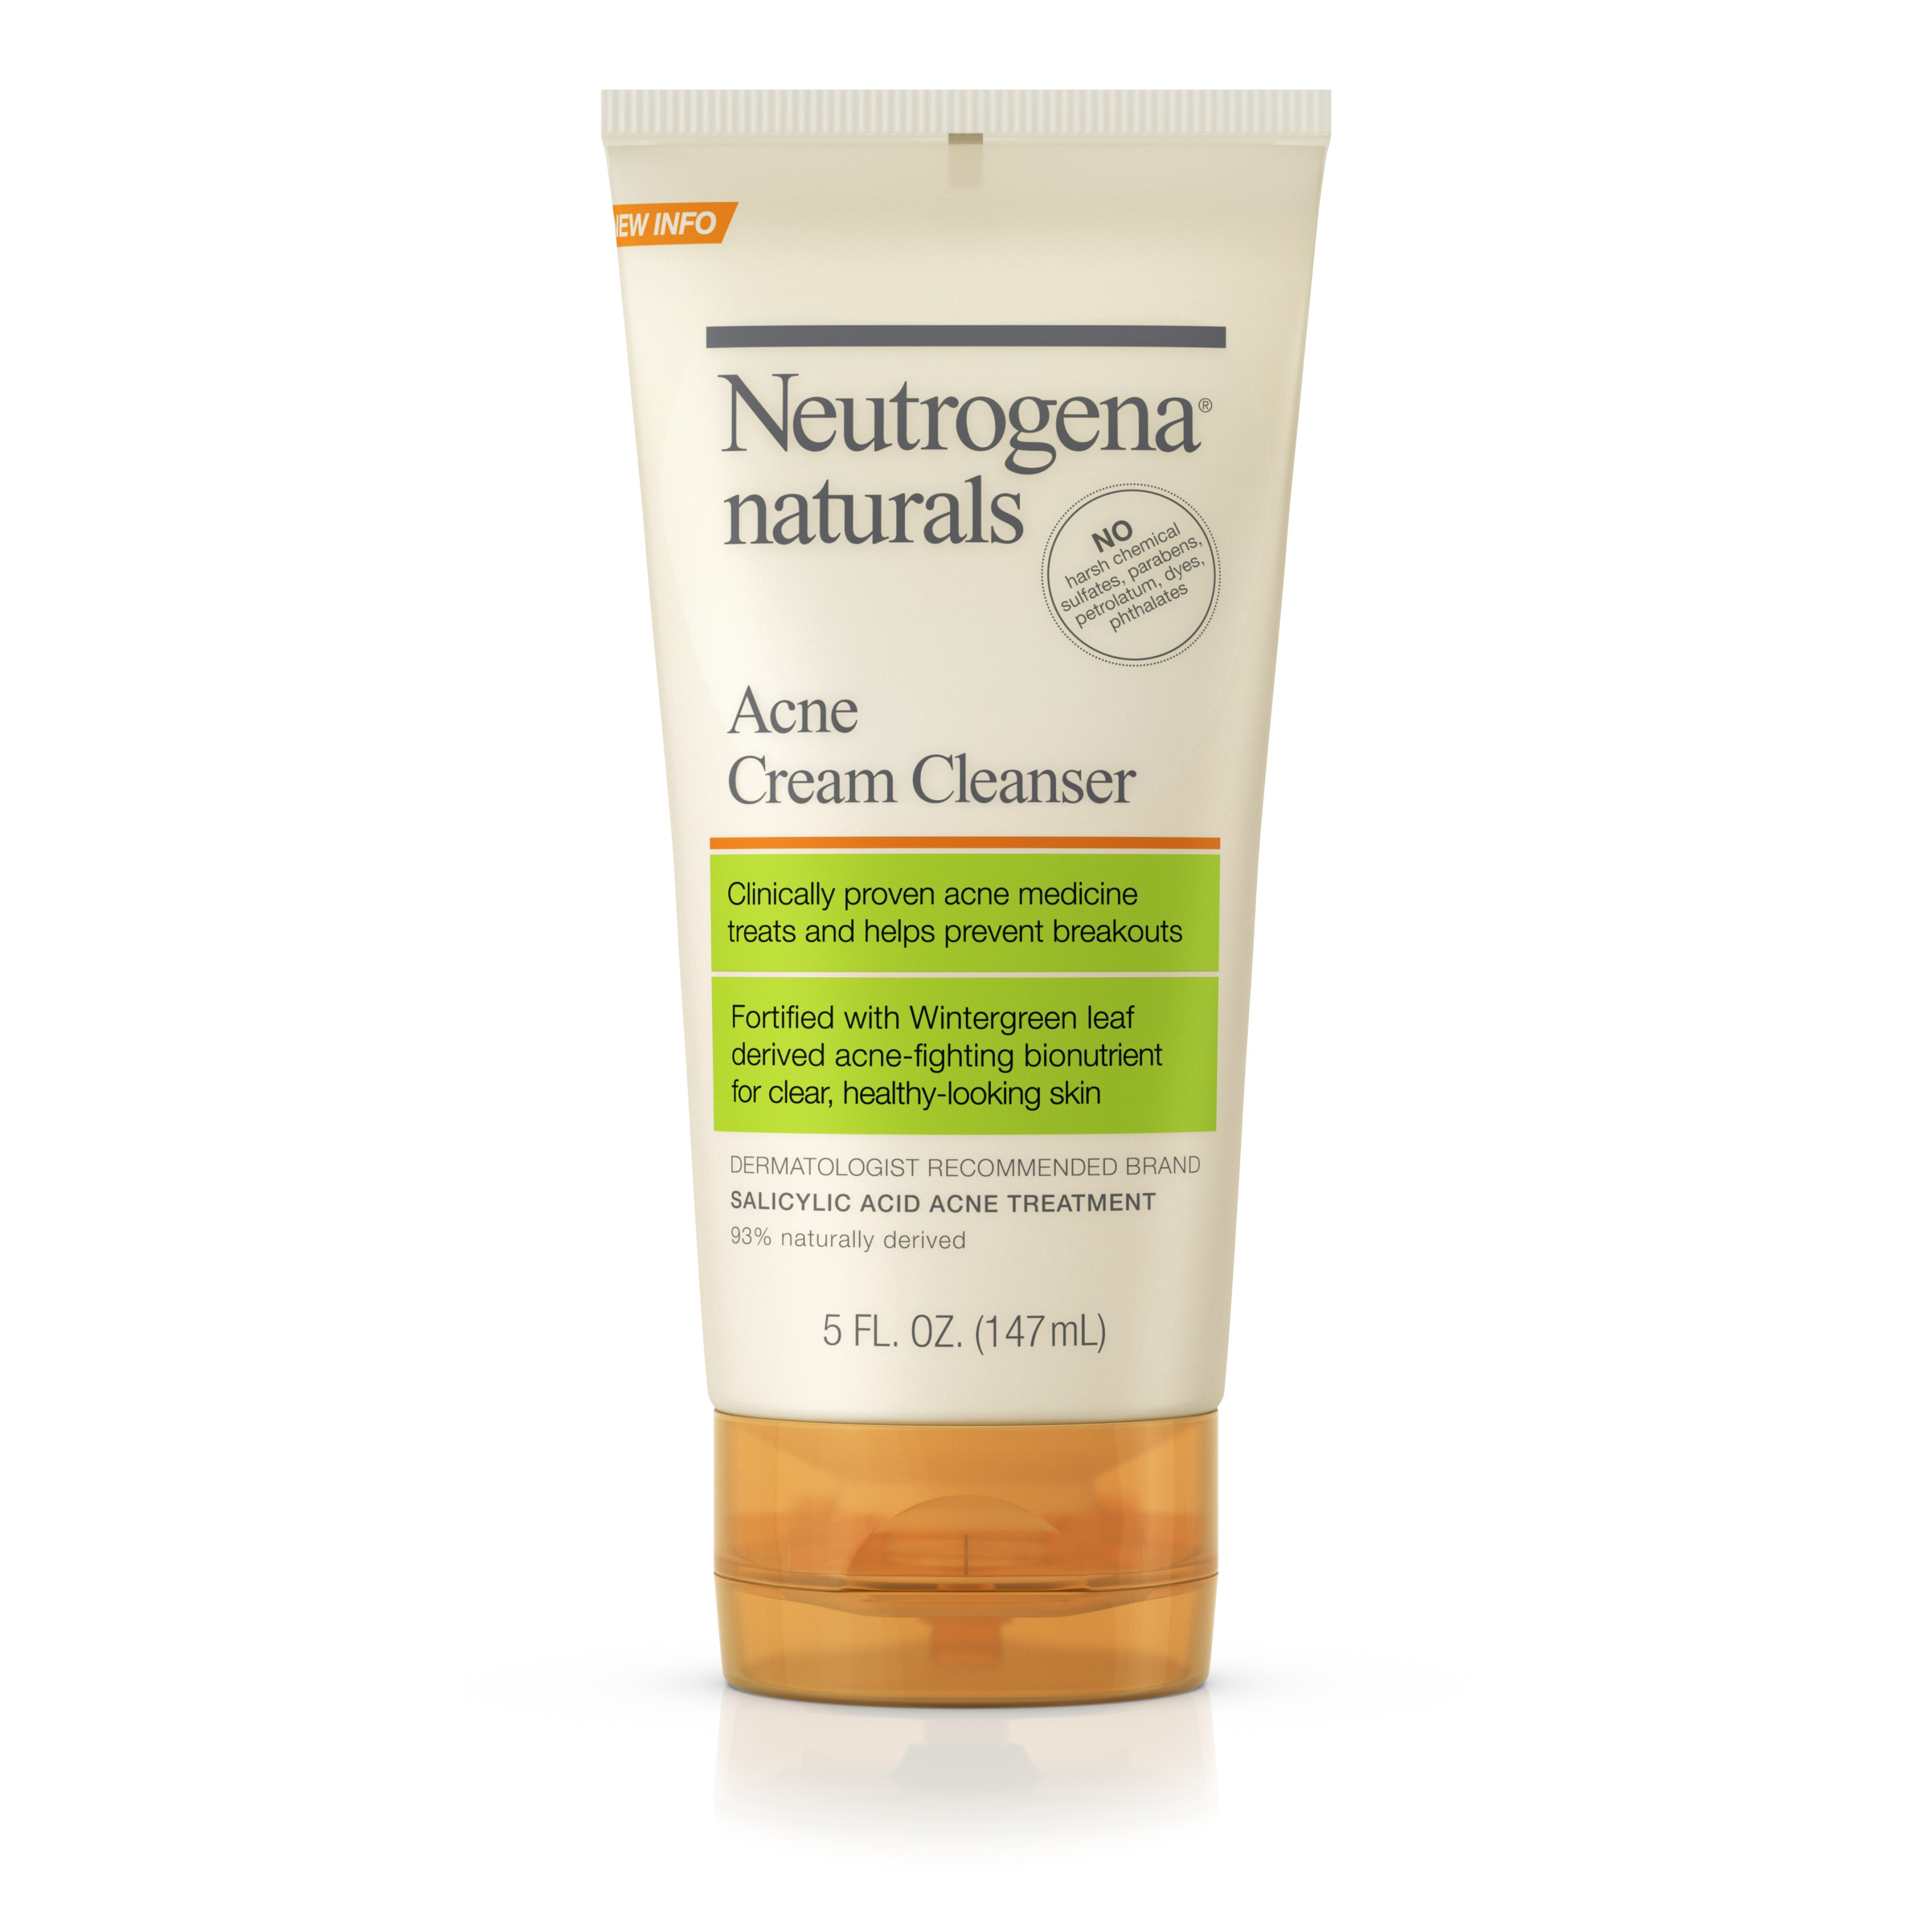 Neutrogena Naturals Acne Cream Cleanser, 5 Oz - Walmart.com